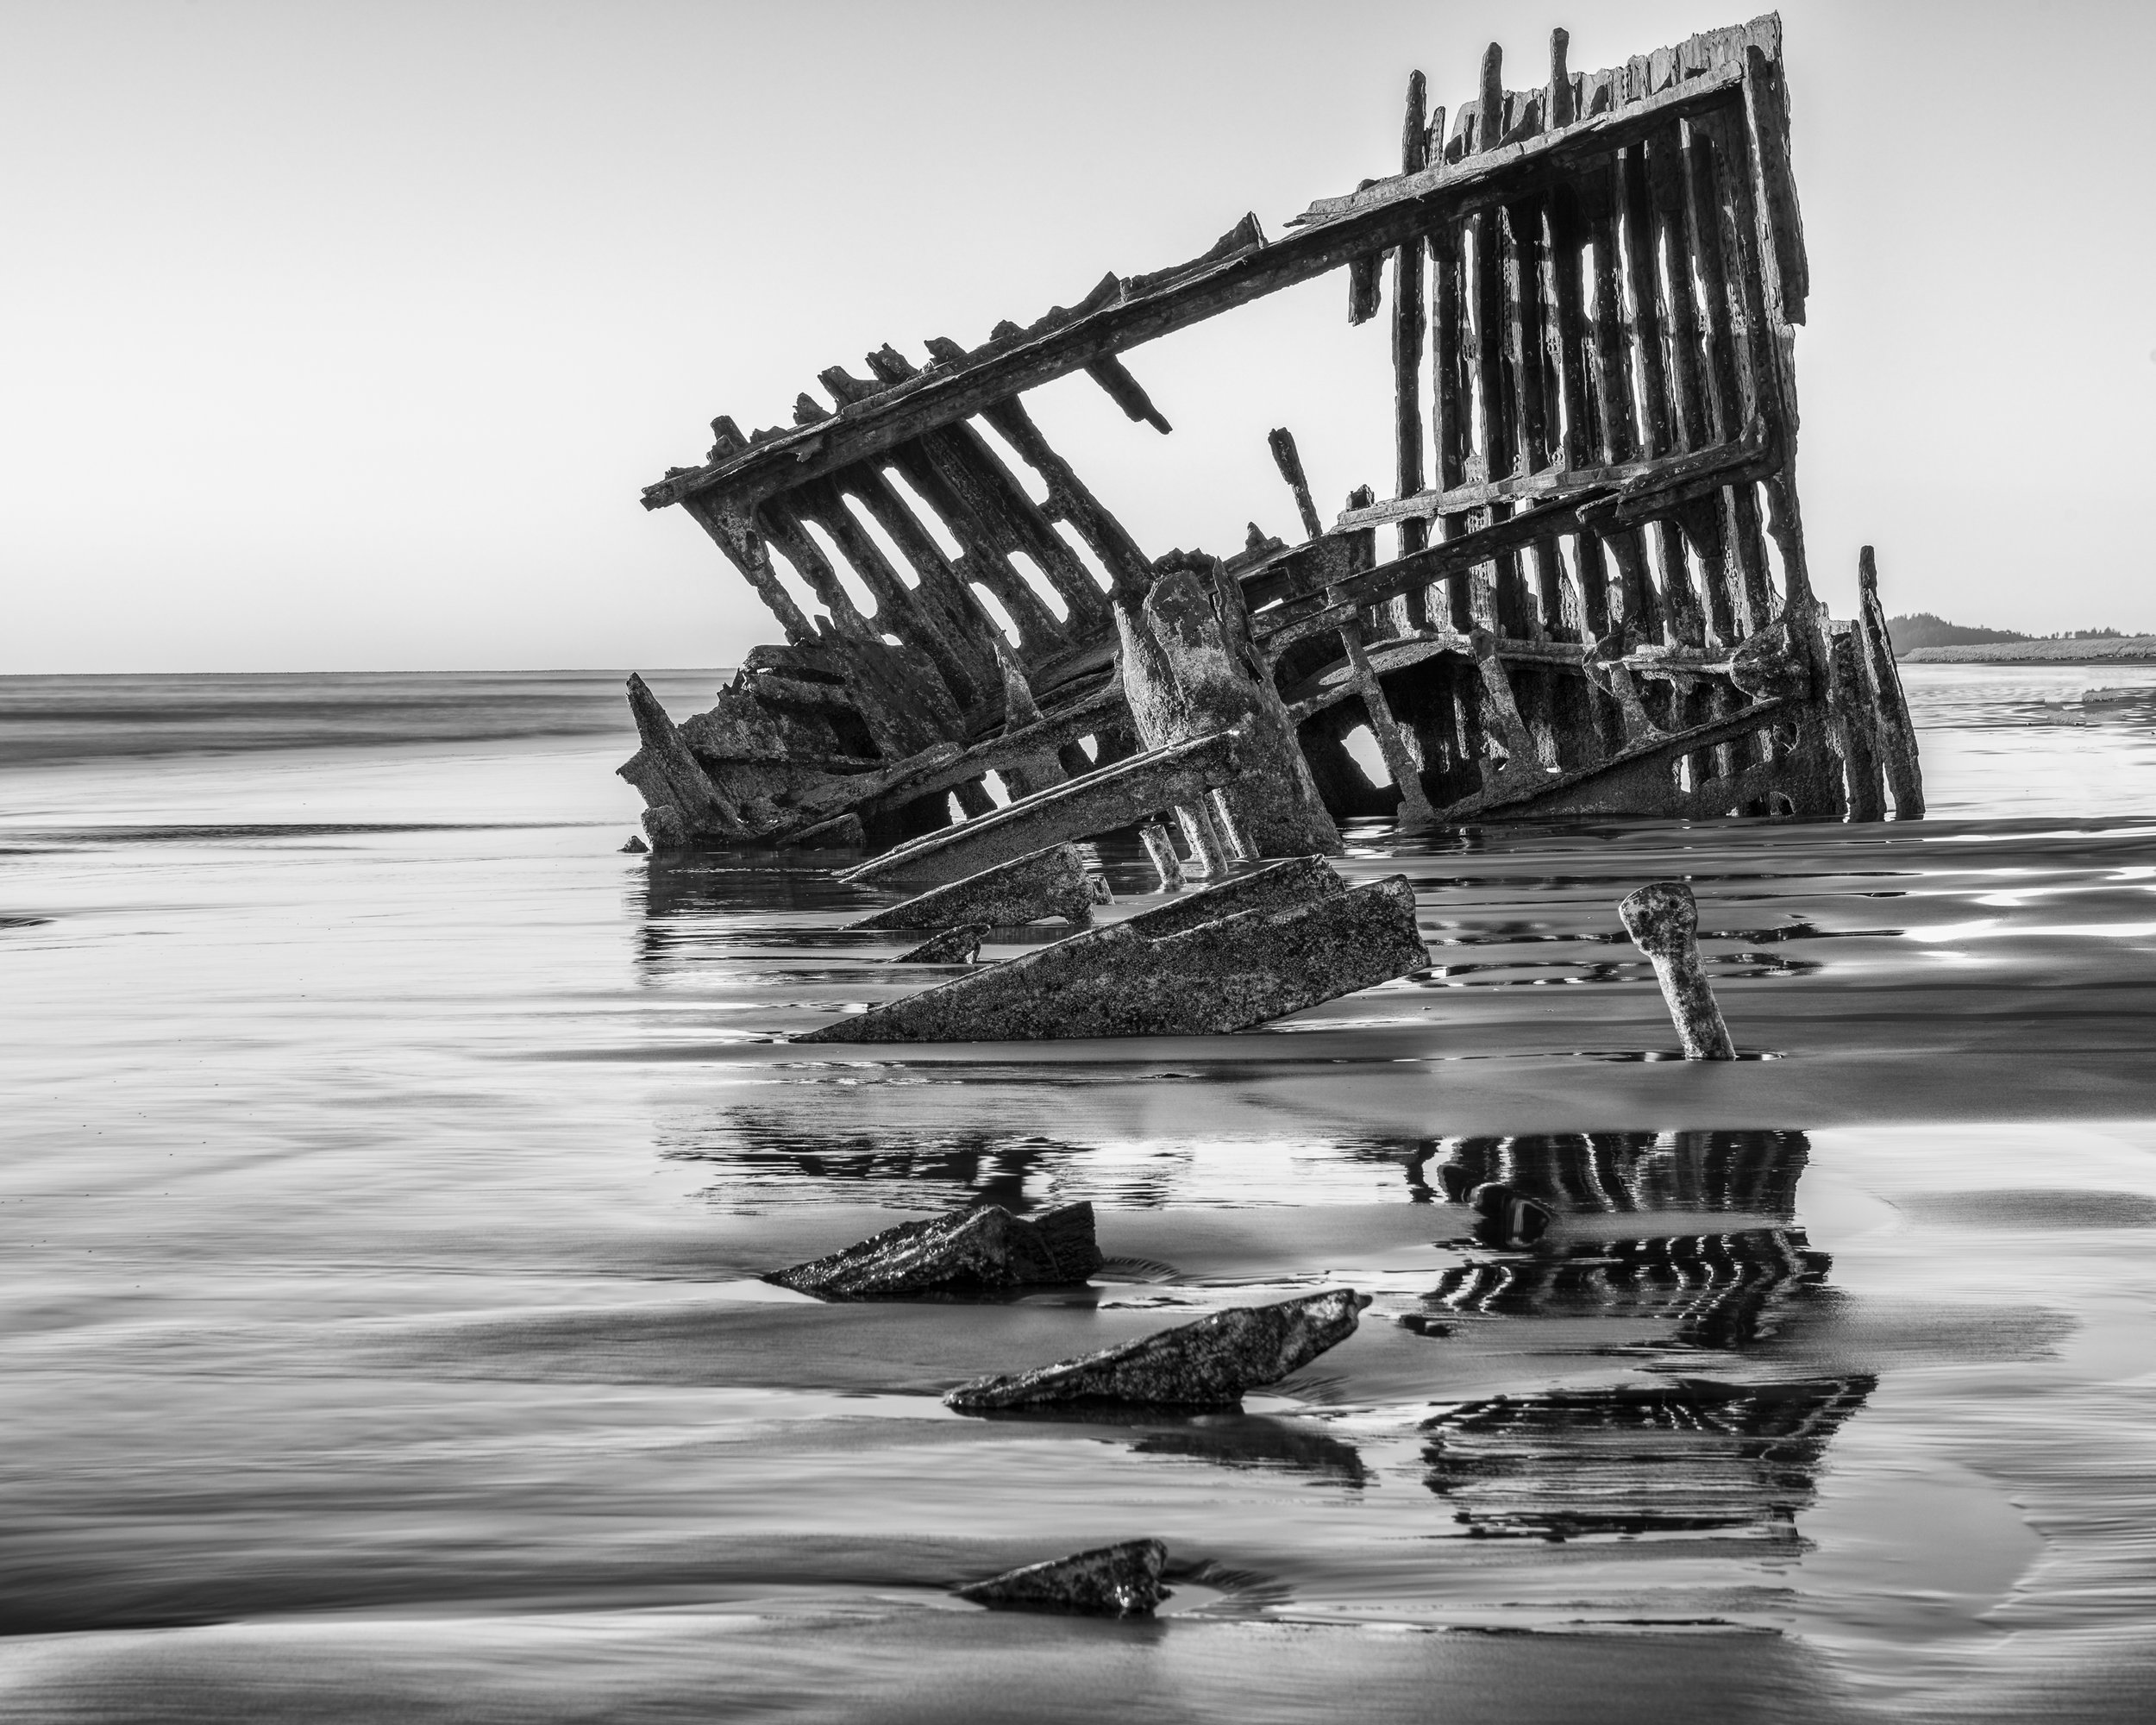 The Peter Iredale 4